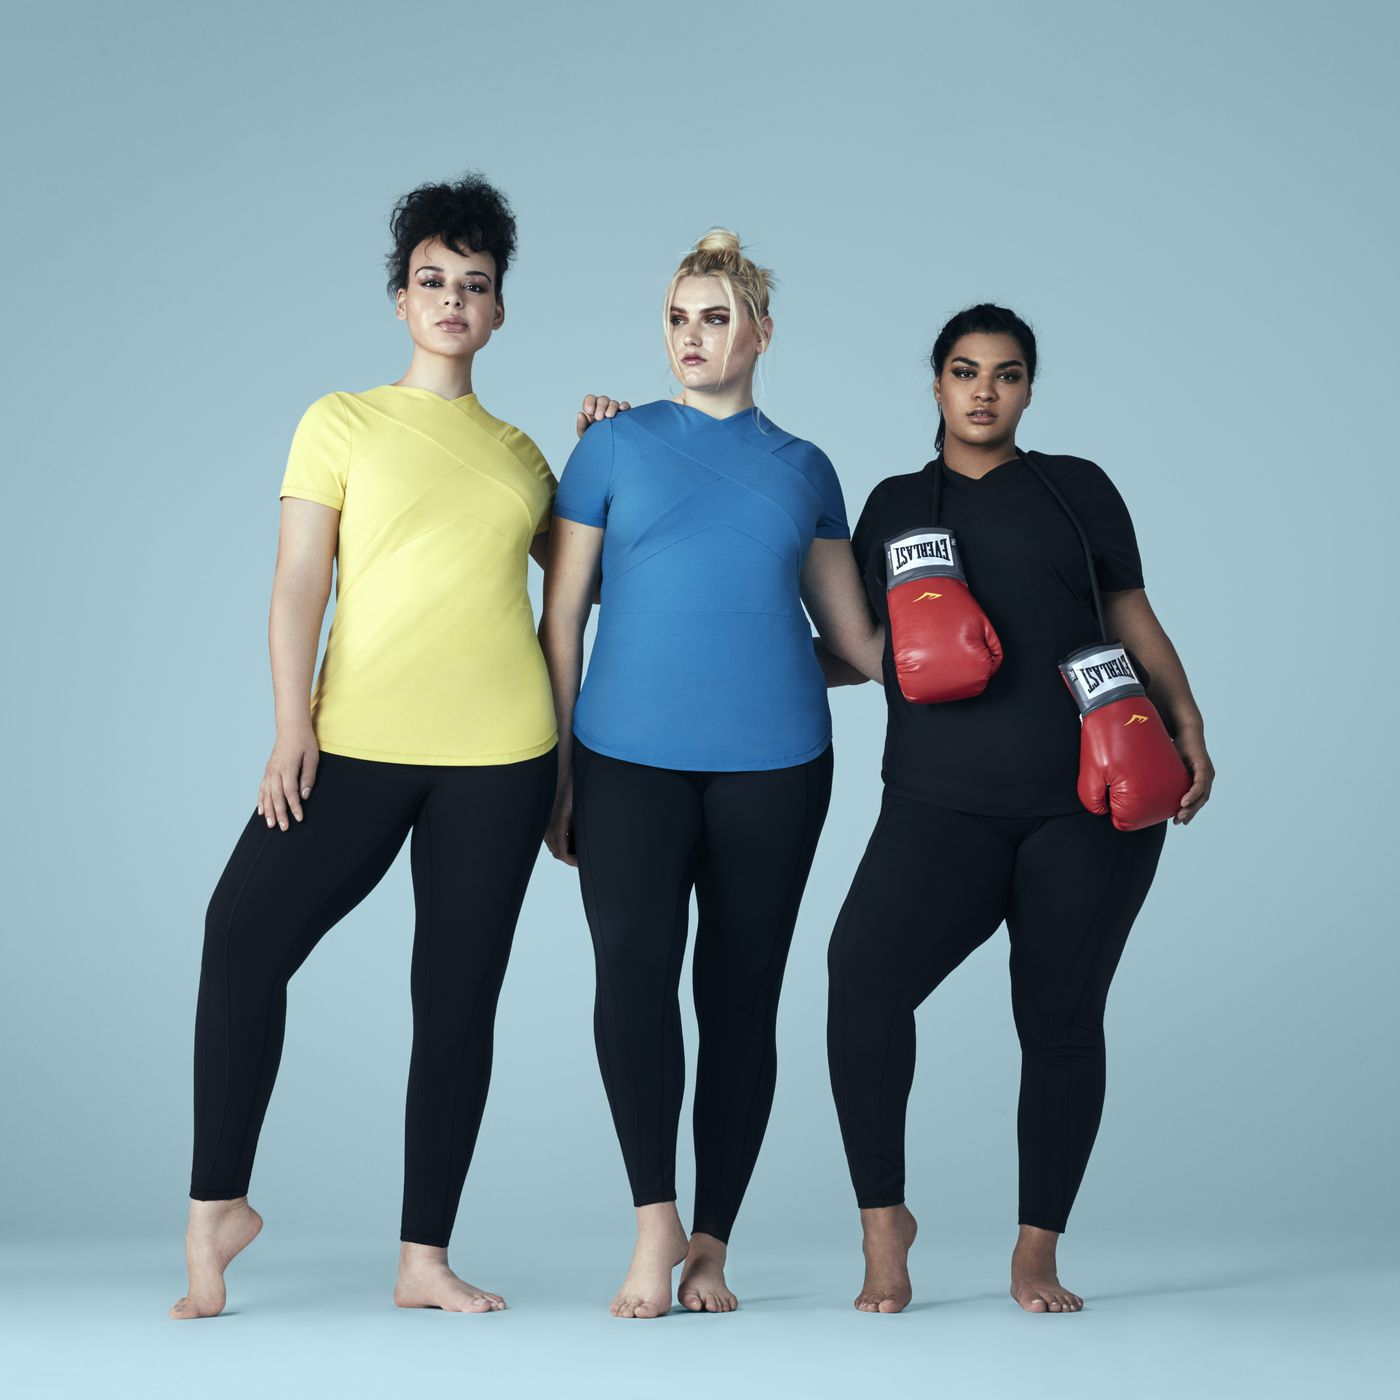 7ad48180f31379 Plus-Size Sportswear Is Still Not Widely Available - Racked